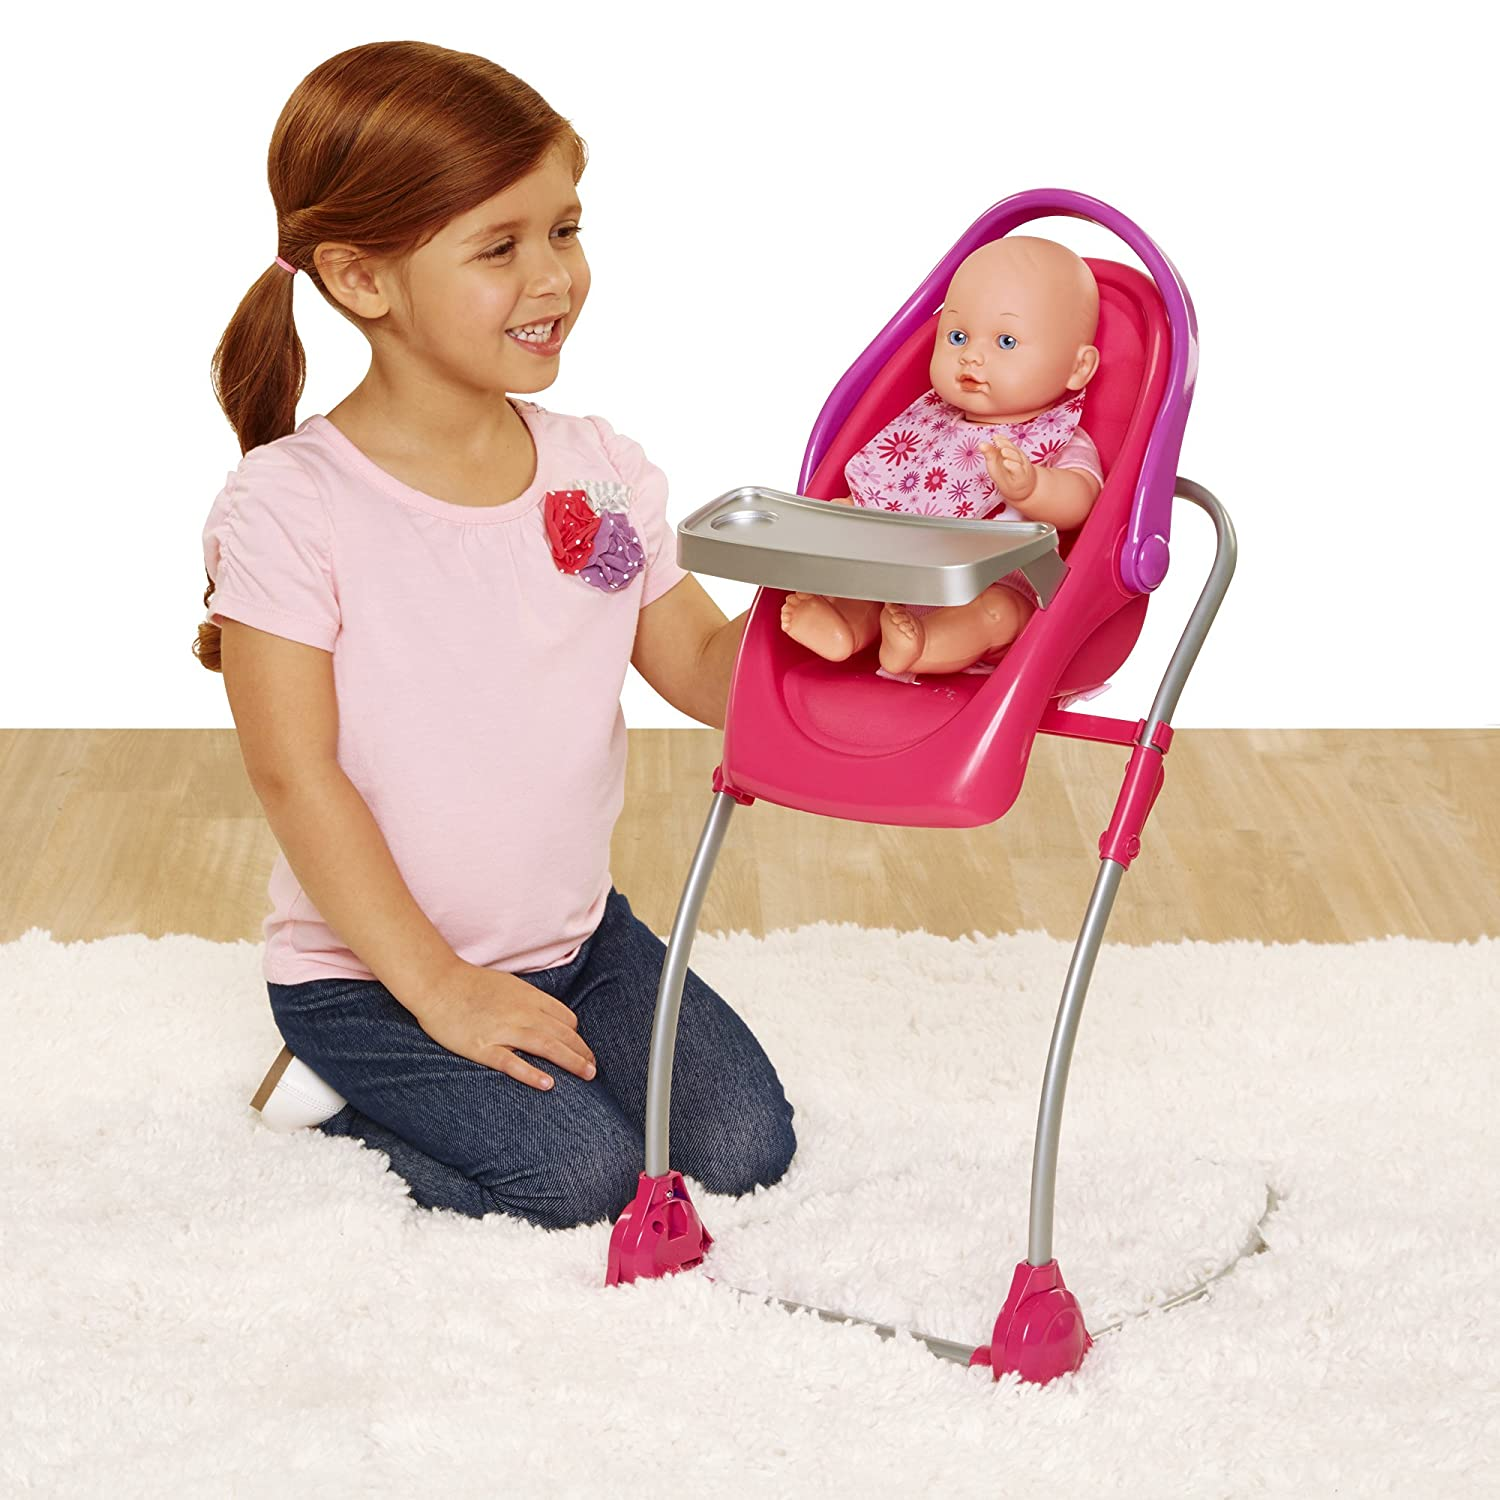 Chicco. 4-in-1 Eat & Swing Highchair for Baby Dolls, Pink Jakks 63955